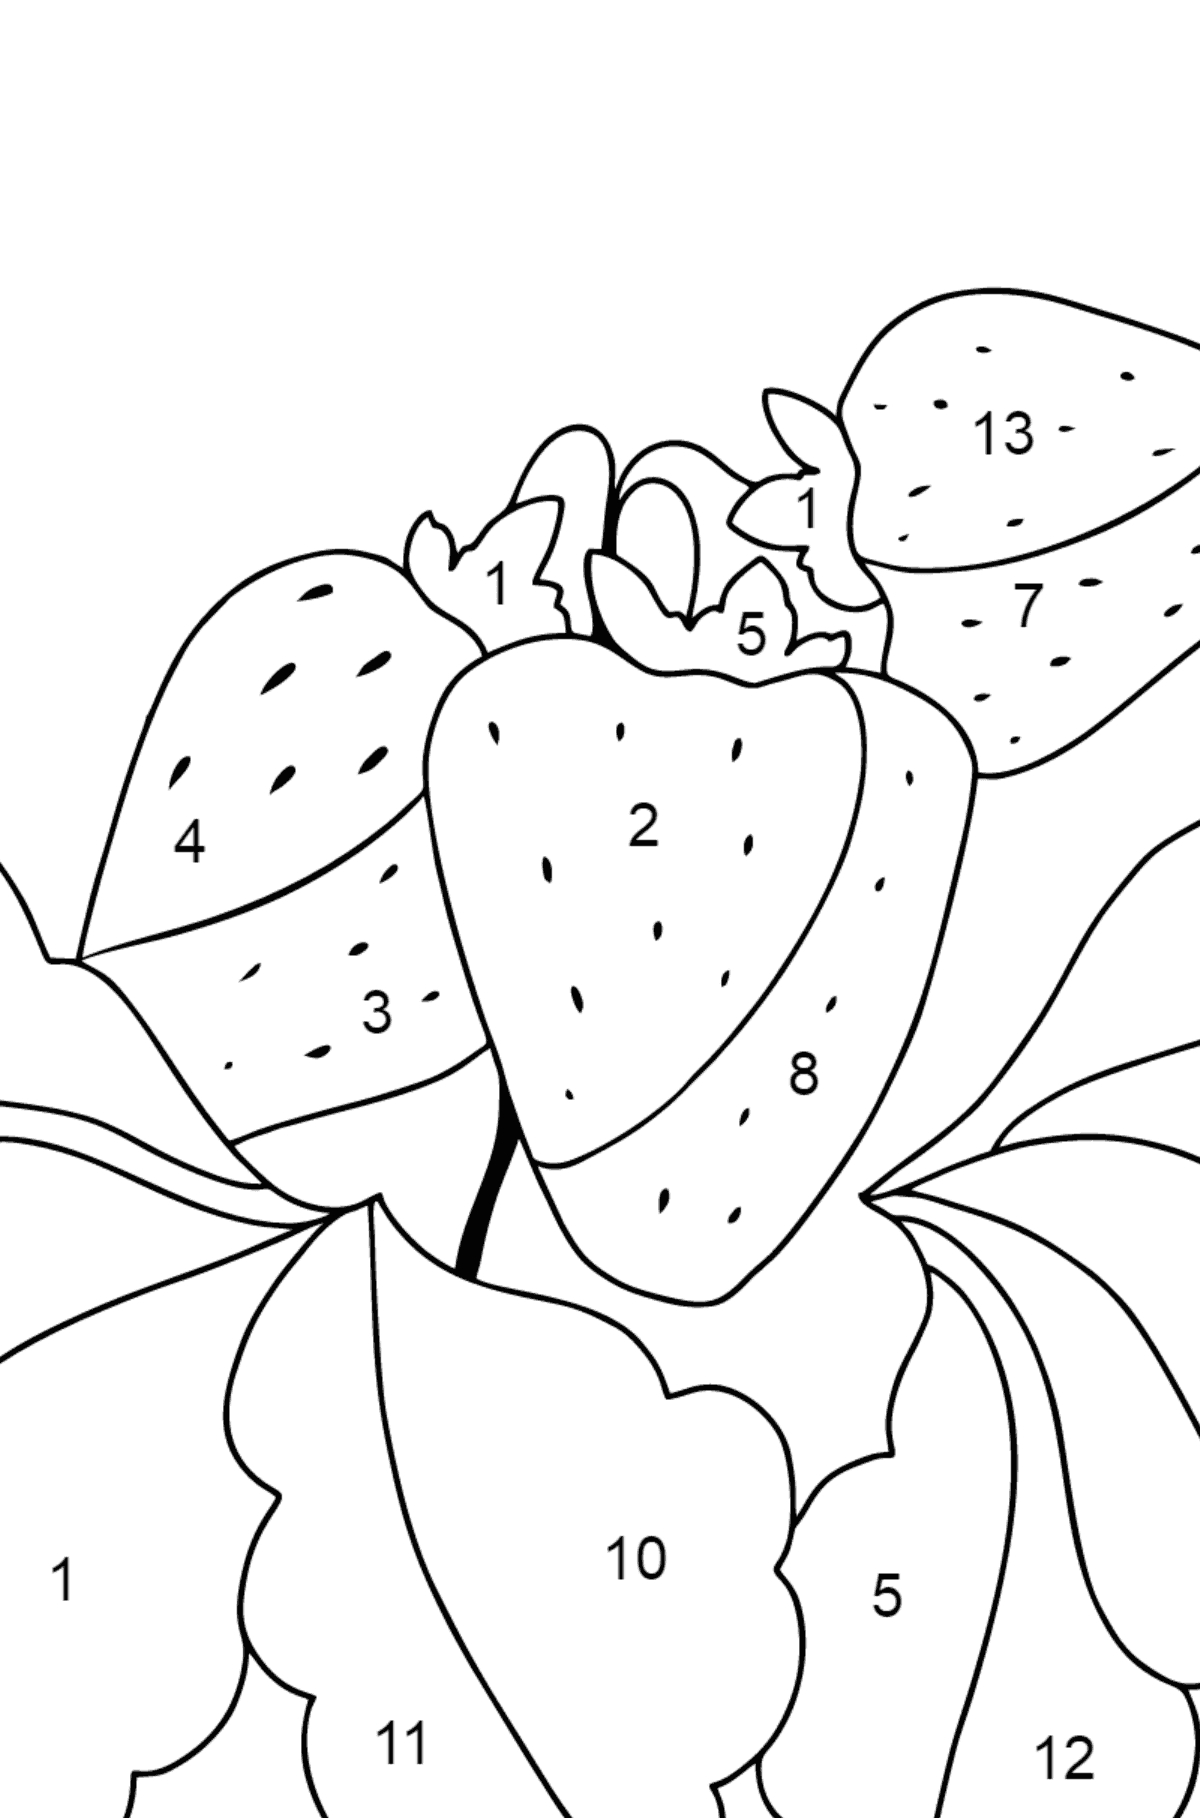 Summer Coloring Page - Strawberries are Ready on the Garden Bed - Coloring by Numbers for Kids